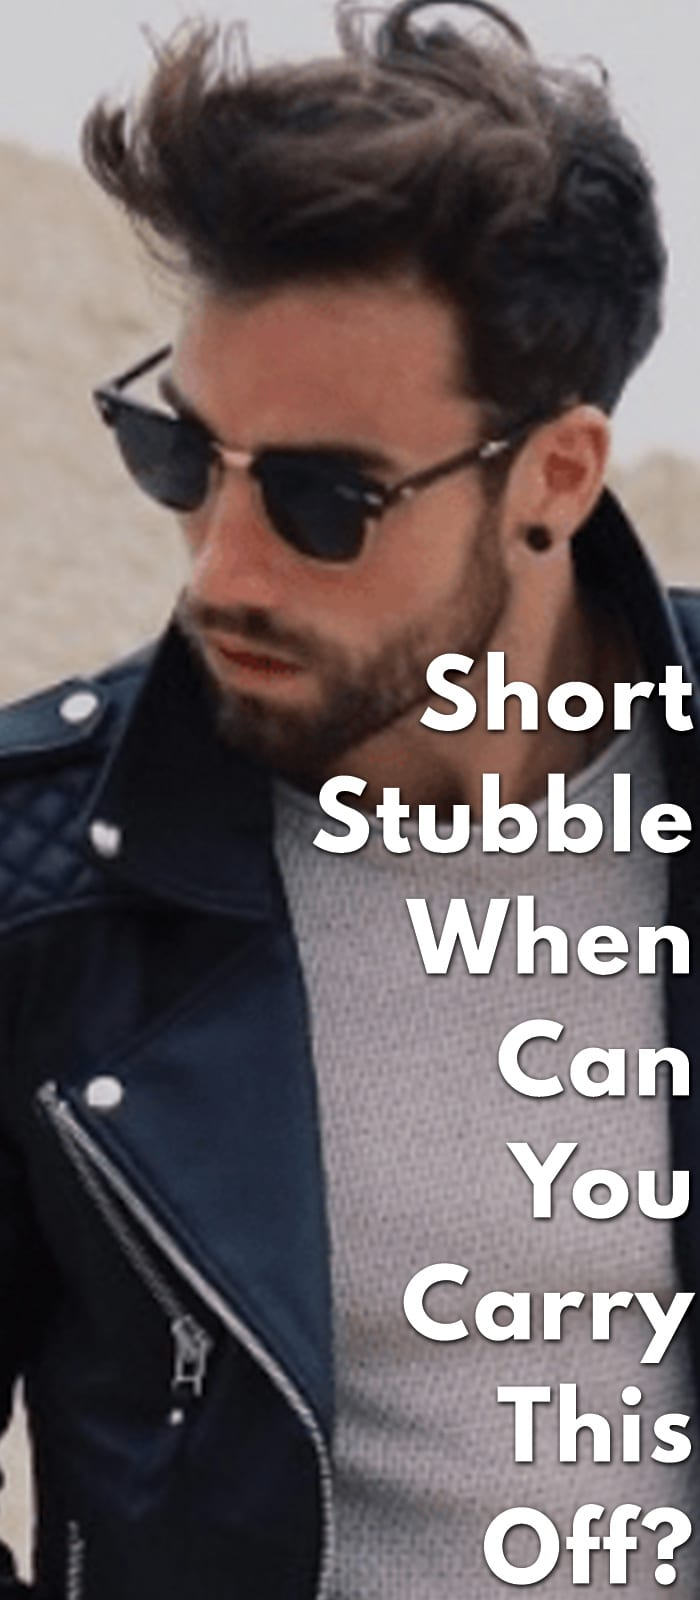 Short-Stubble-–-When-can-you-carry-this-off.